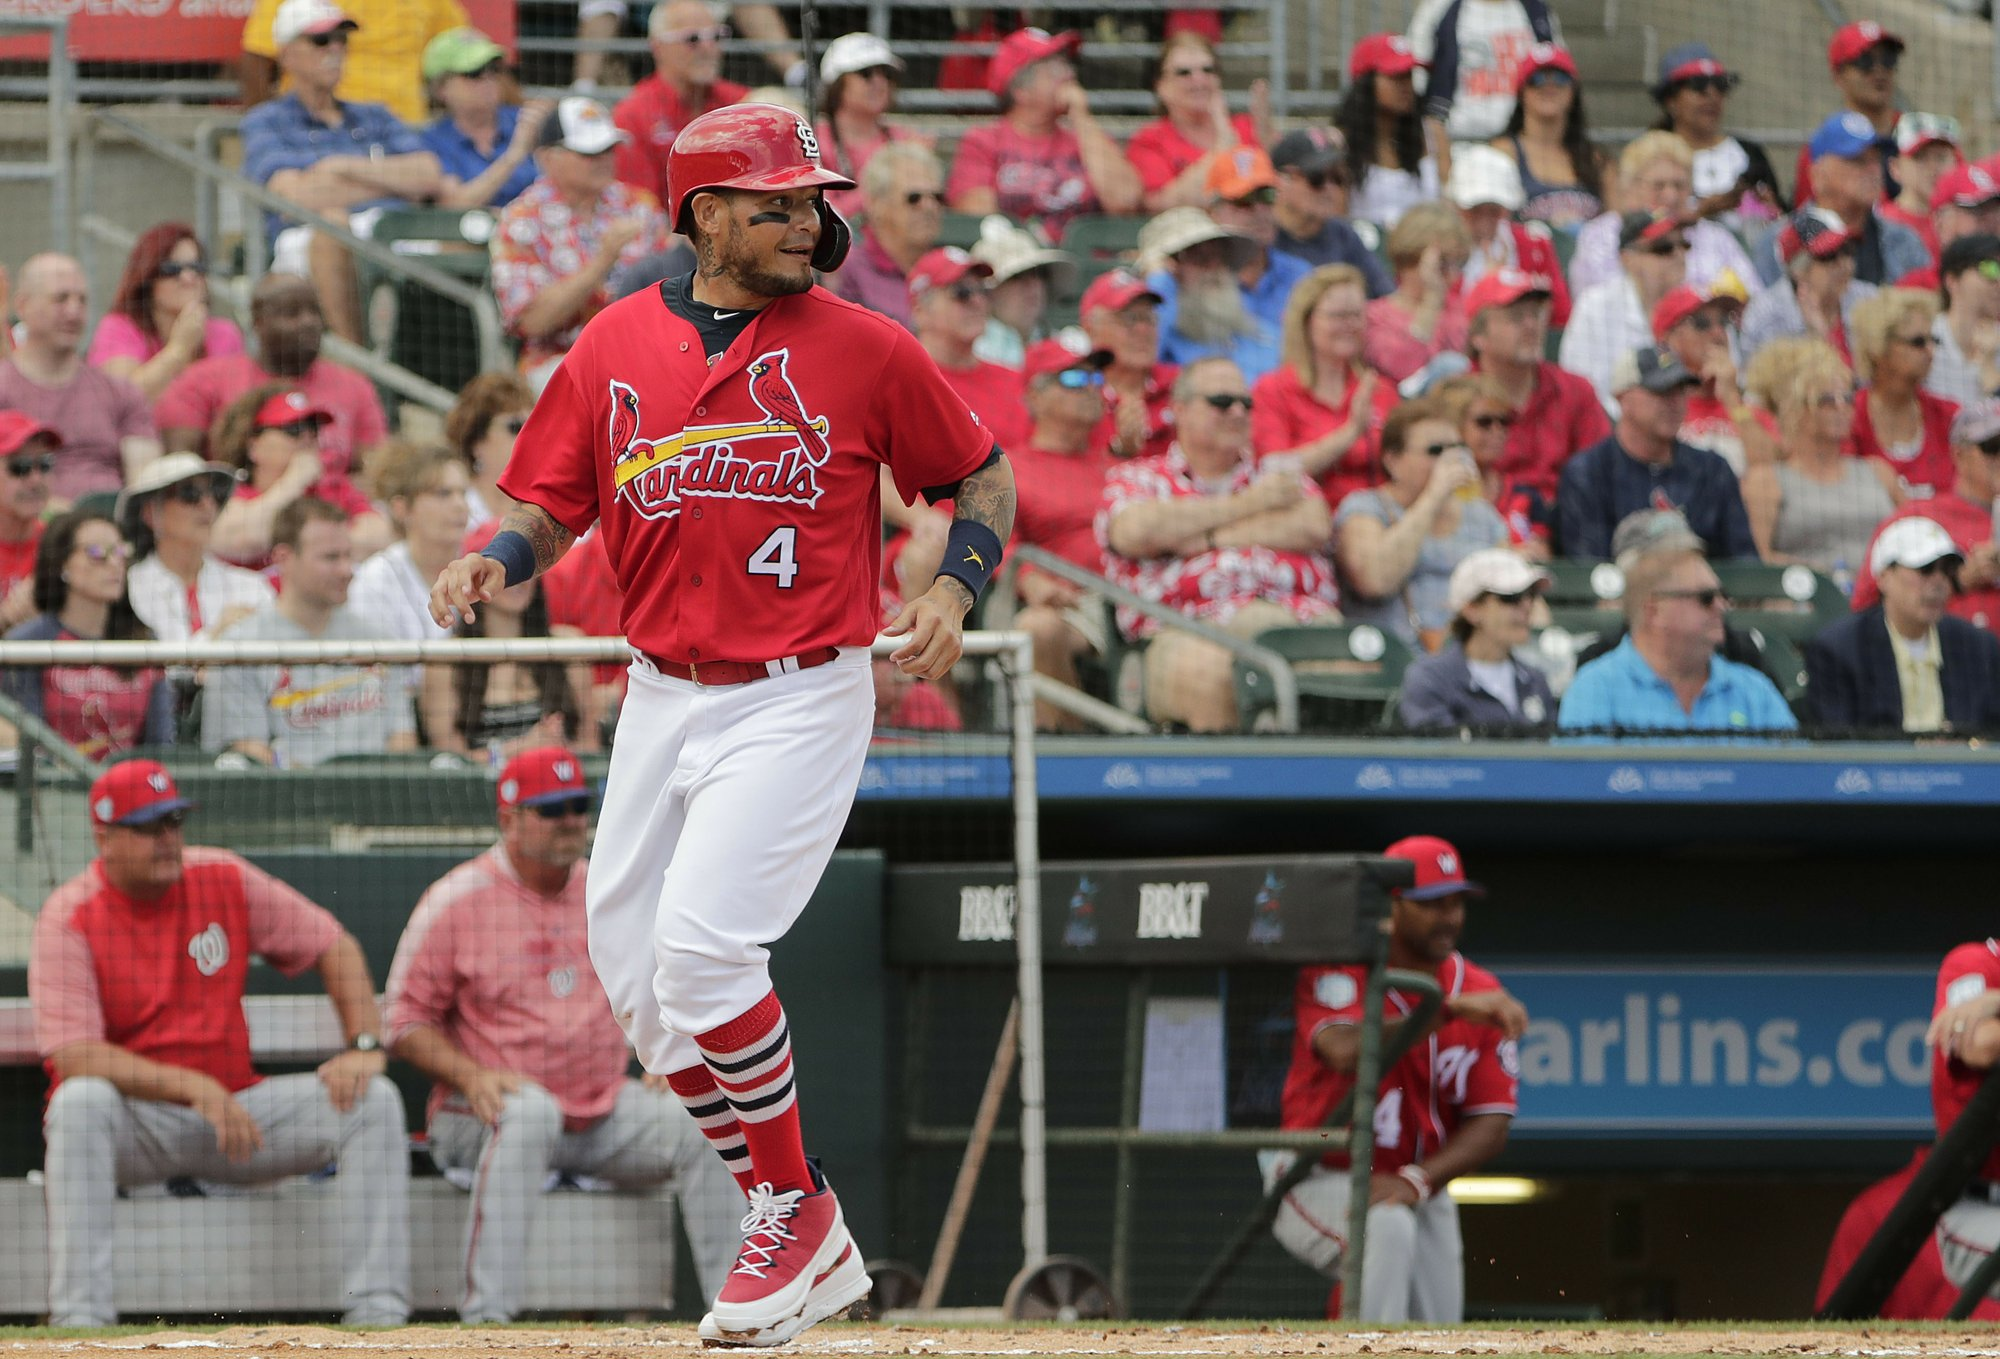 Cardinals' Yadier Molina singles in return from knee surgery